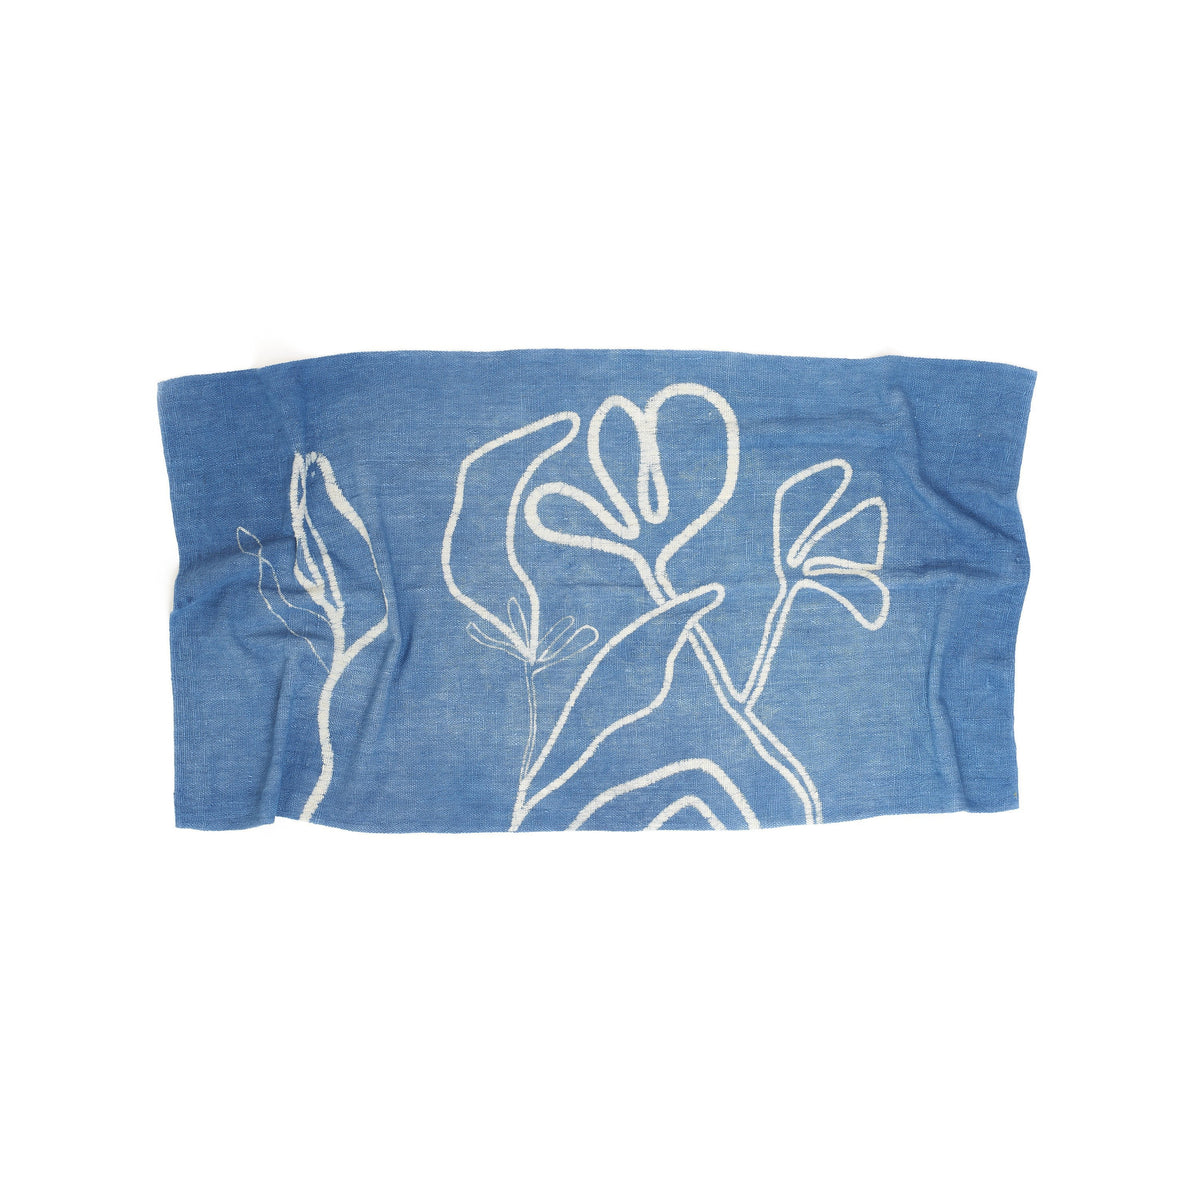 Natural Indigo Handpainted Towel